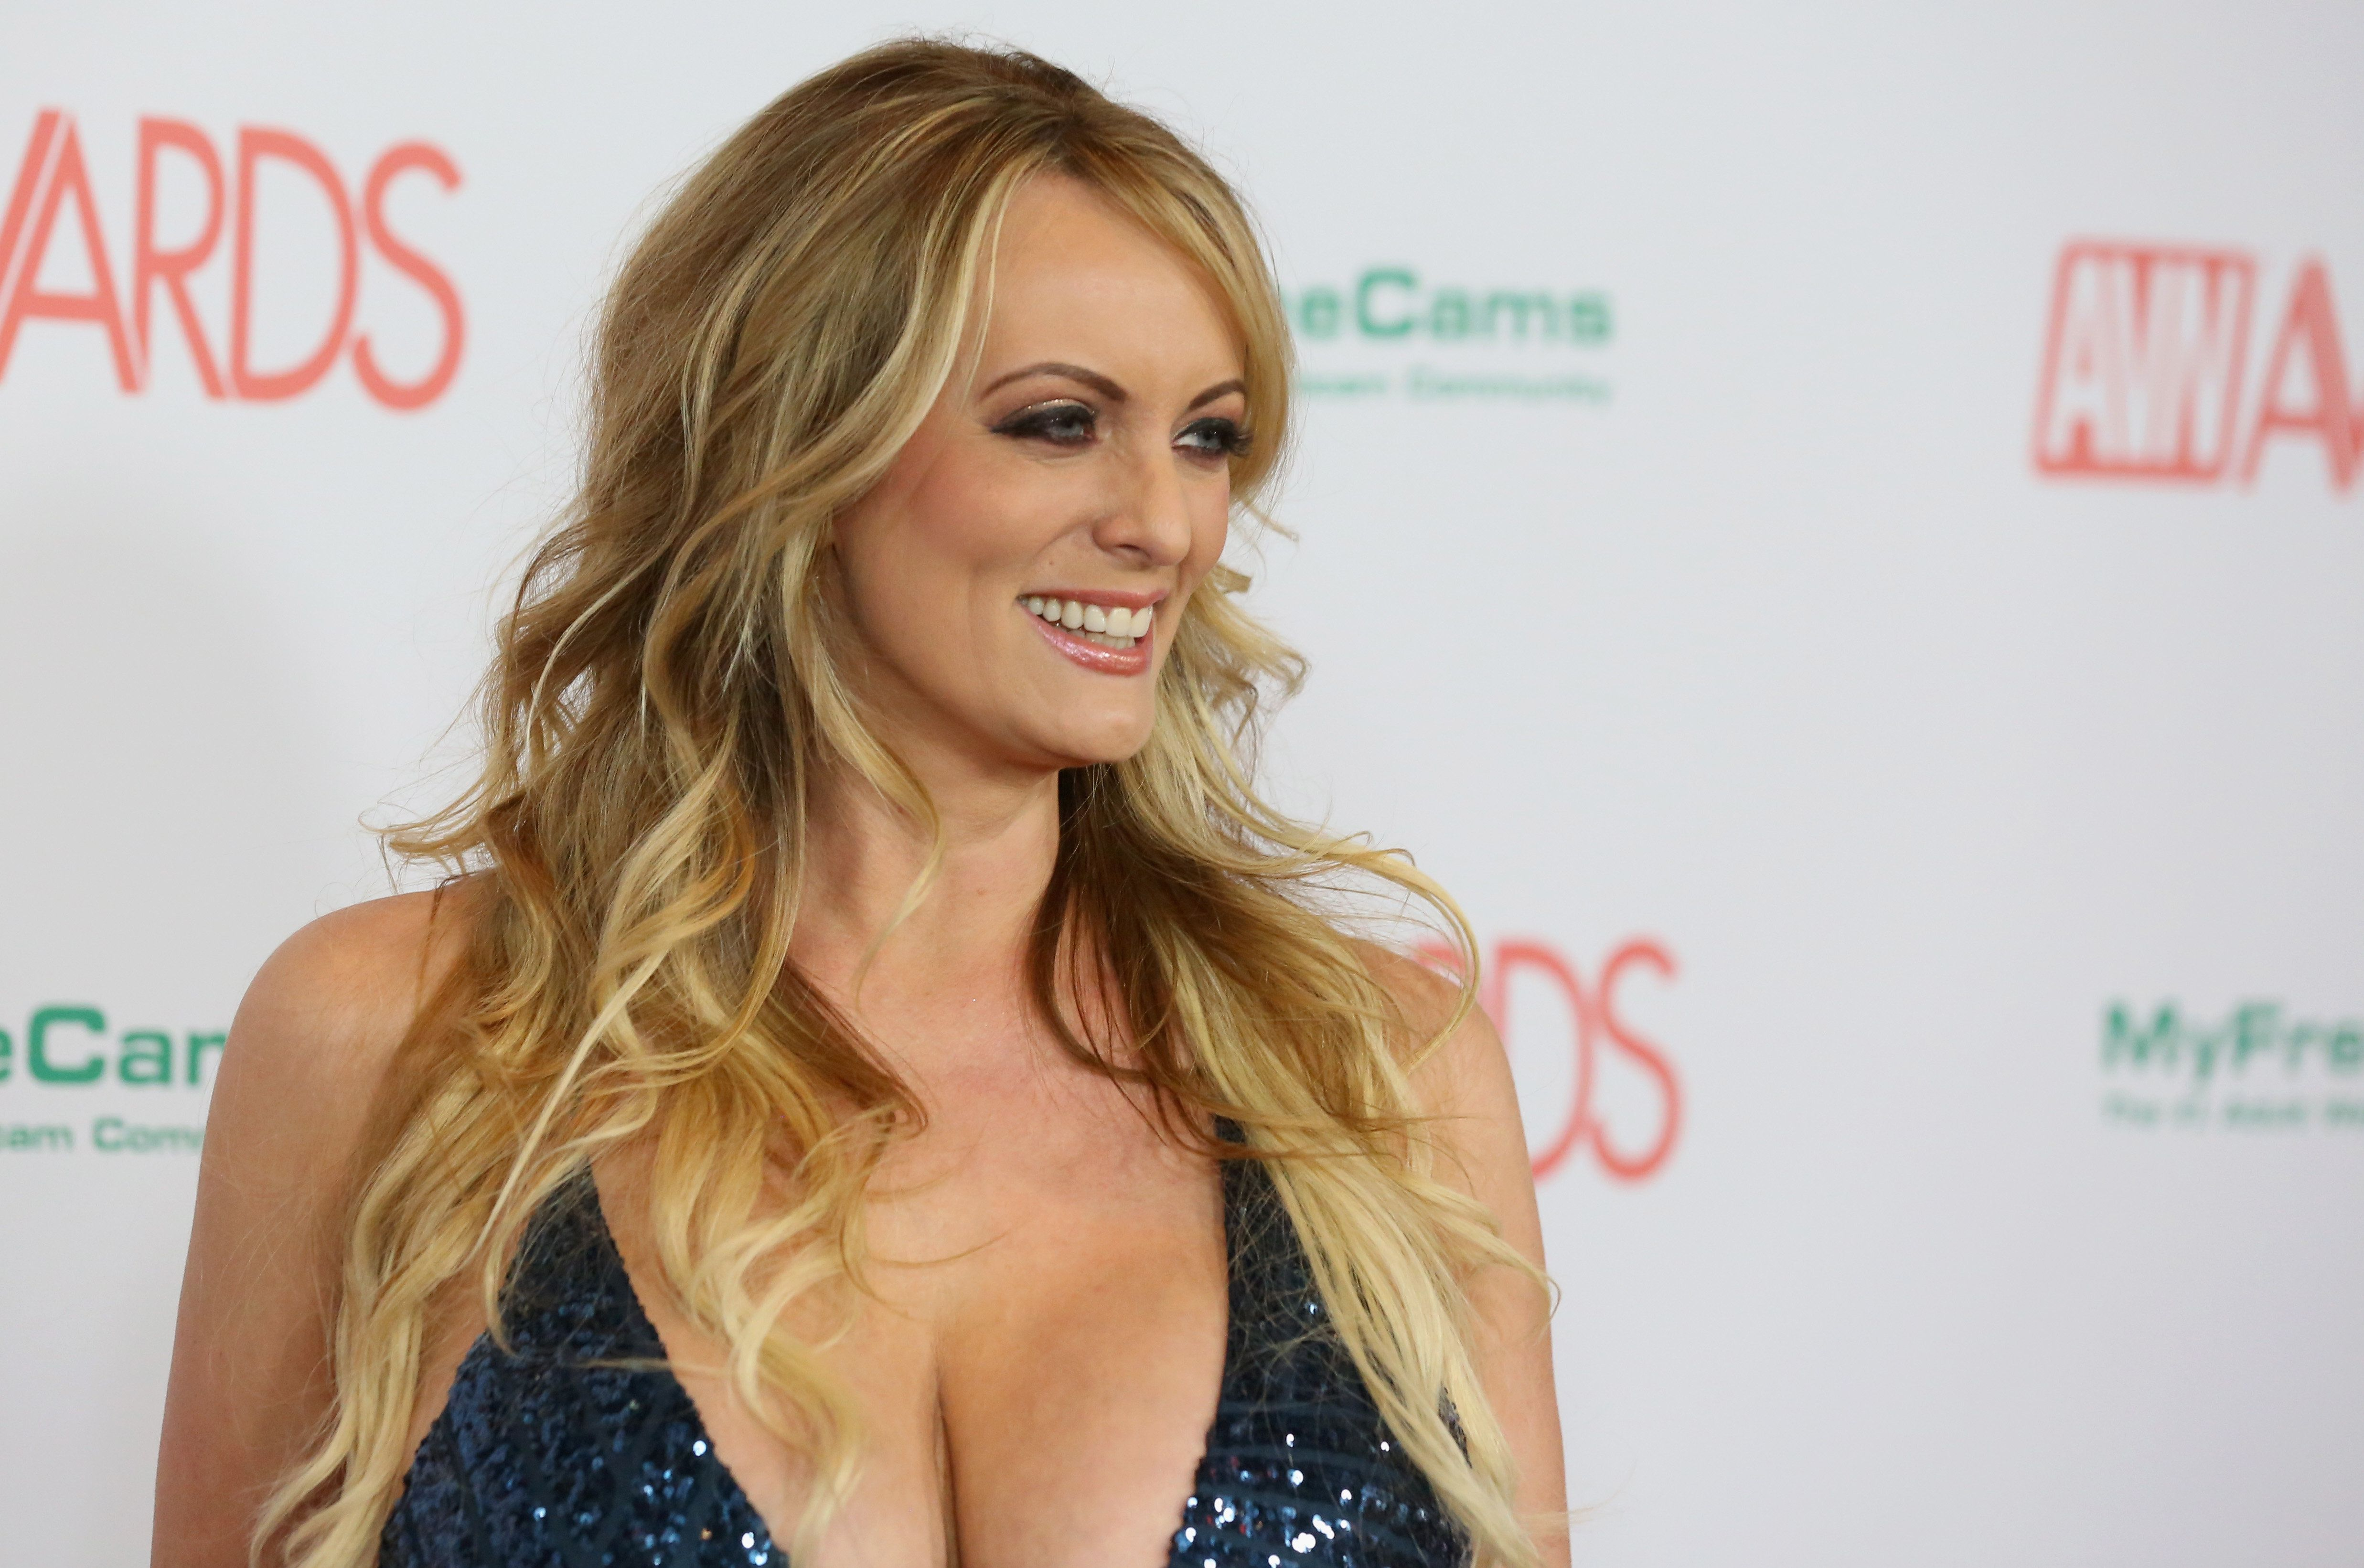 Stephanie Clifford Alleged In A  Interview That Shed Had An Affair With Donald